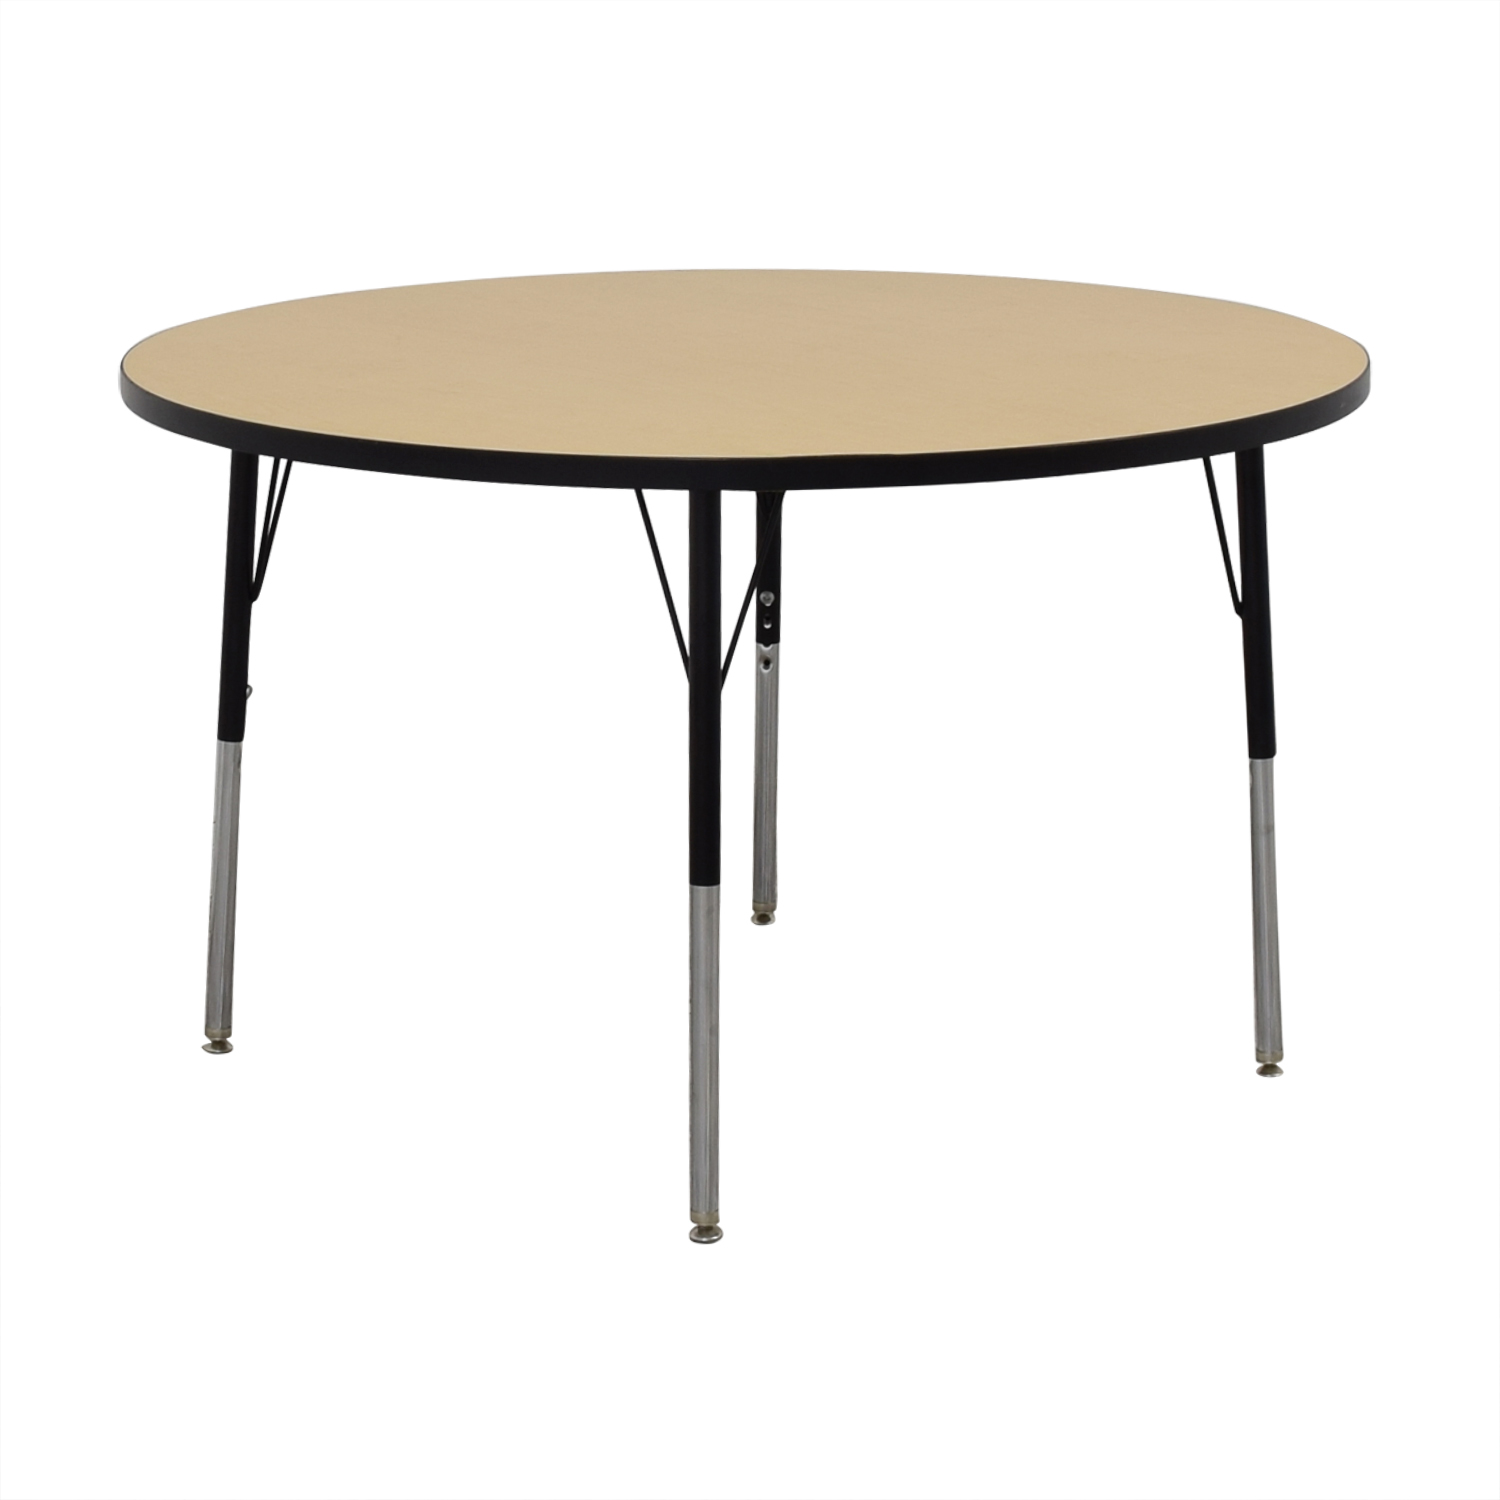 Round Activity Table for sale